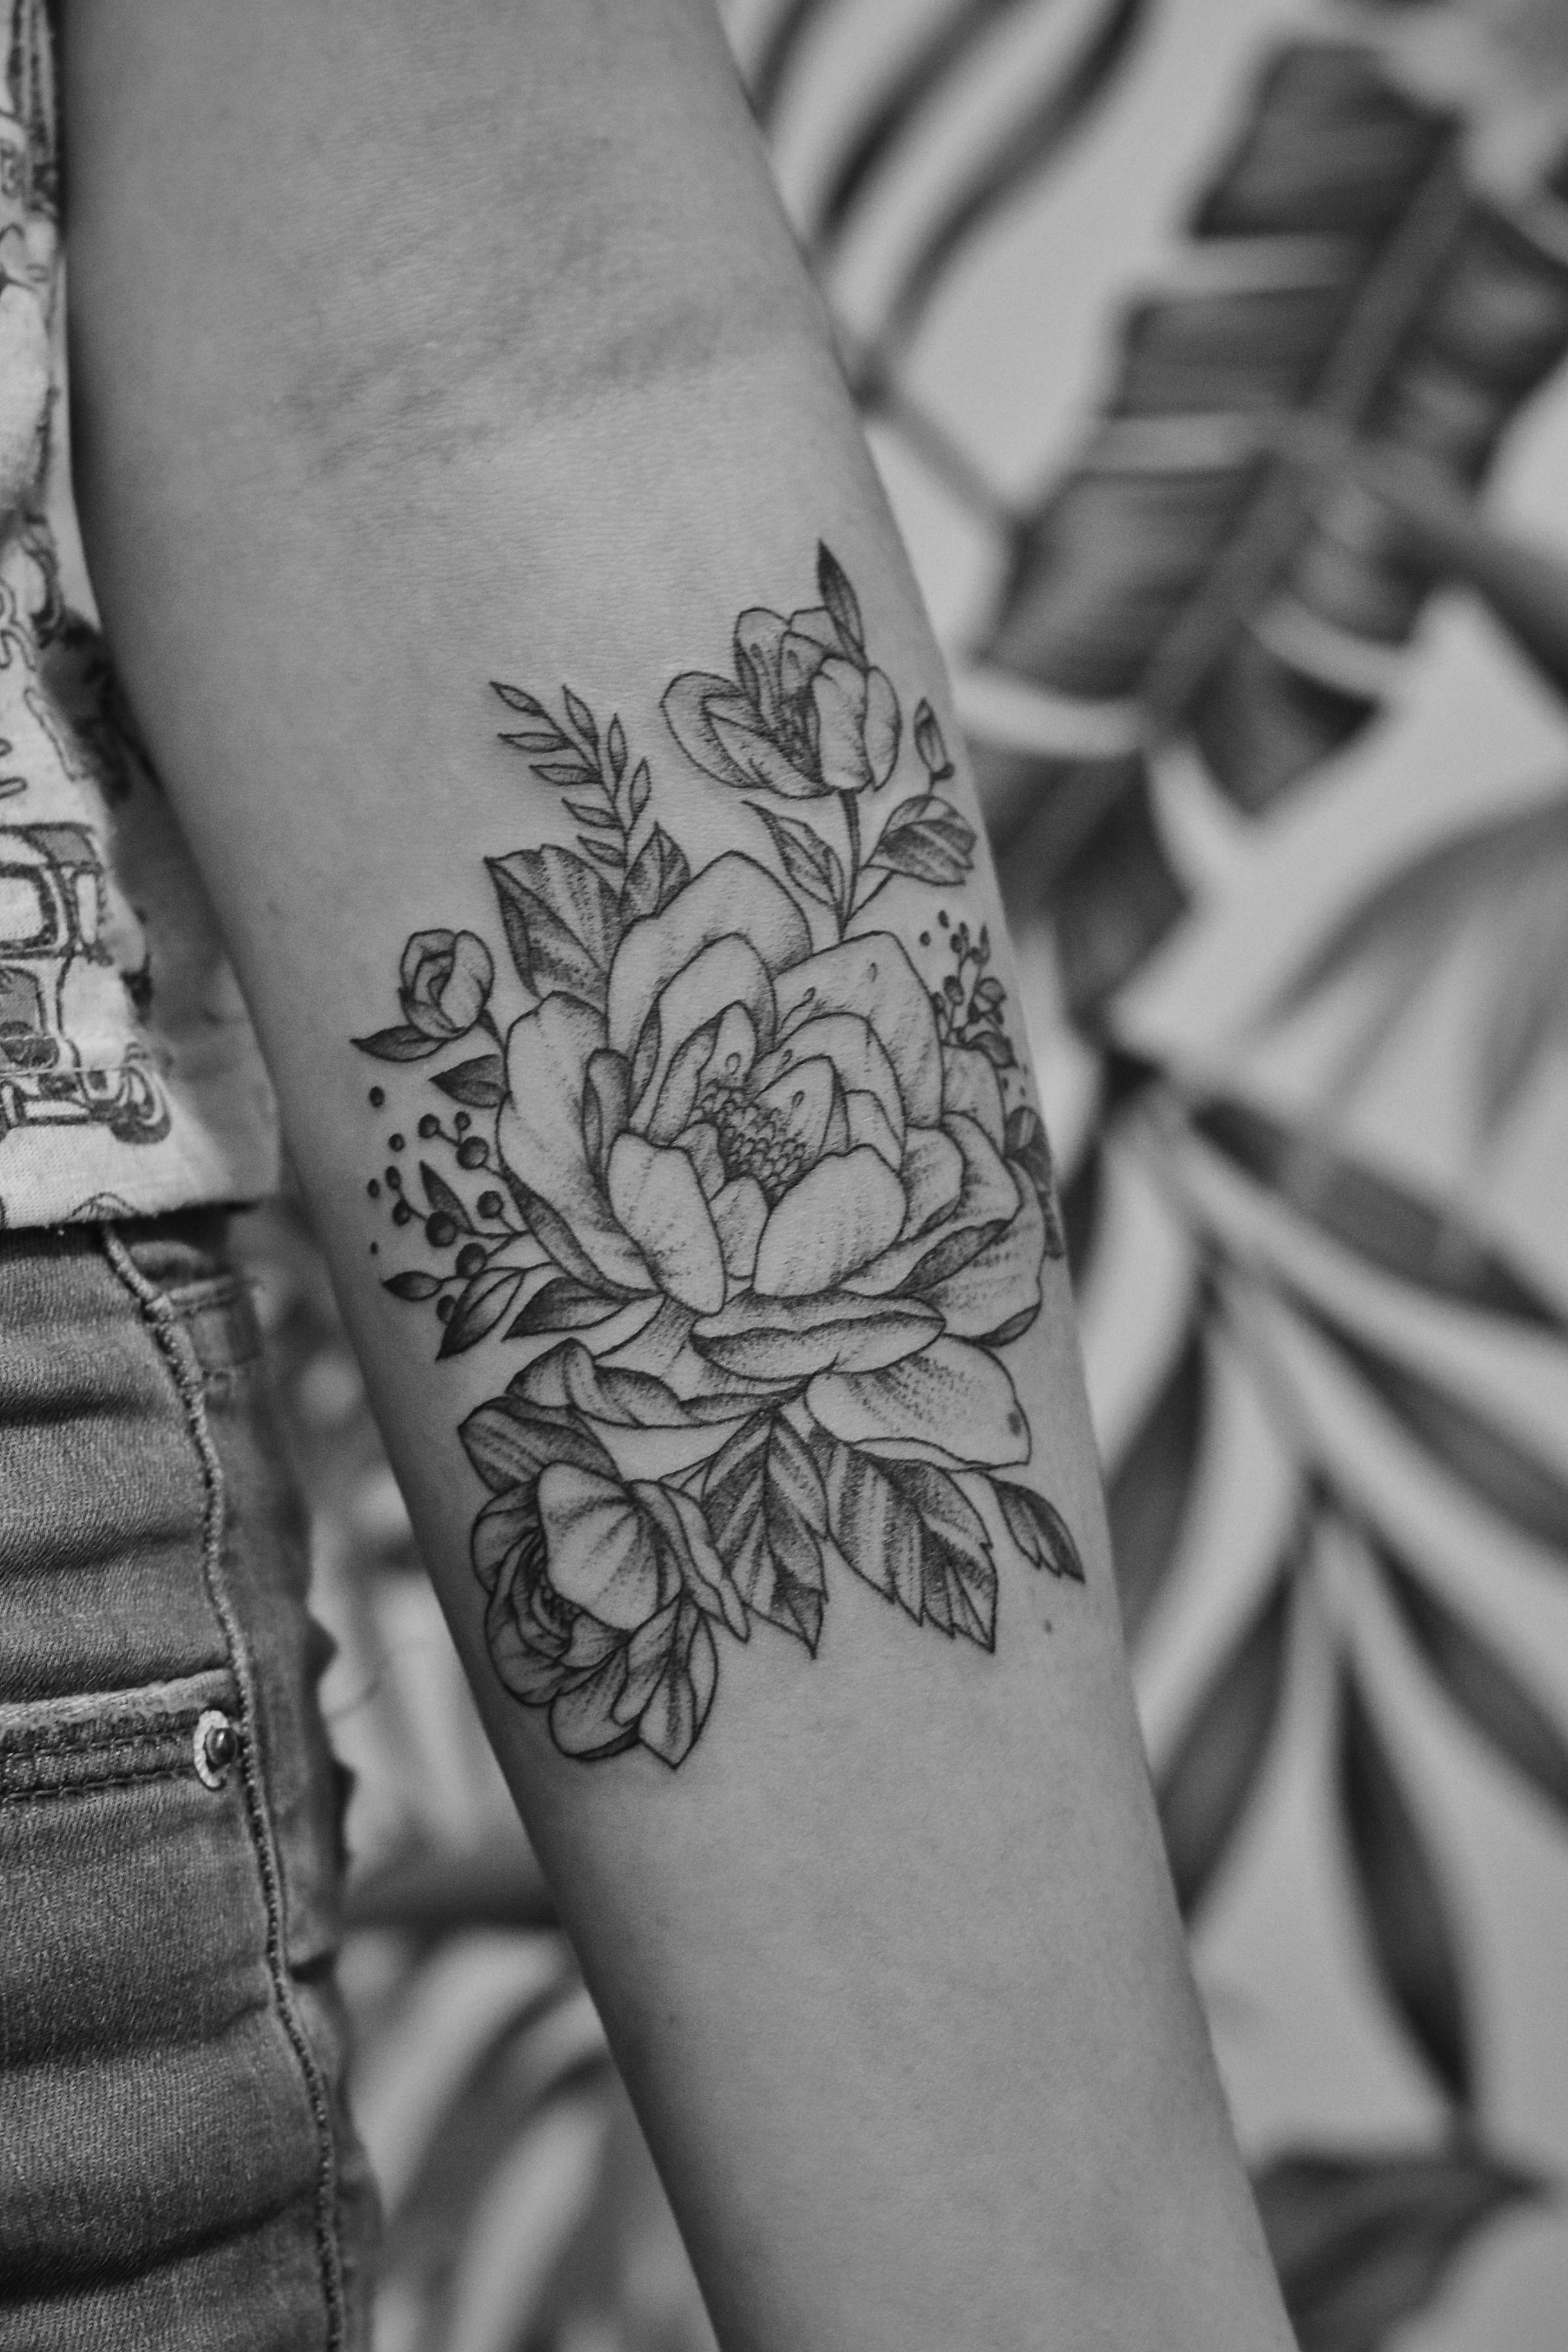 Person With Black Rose Tattoo Photo Free Skin Image On Unsplash